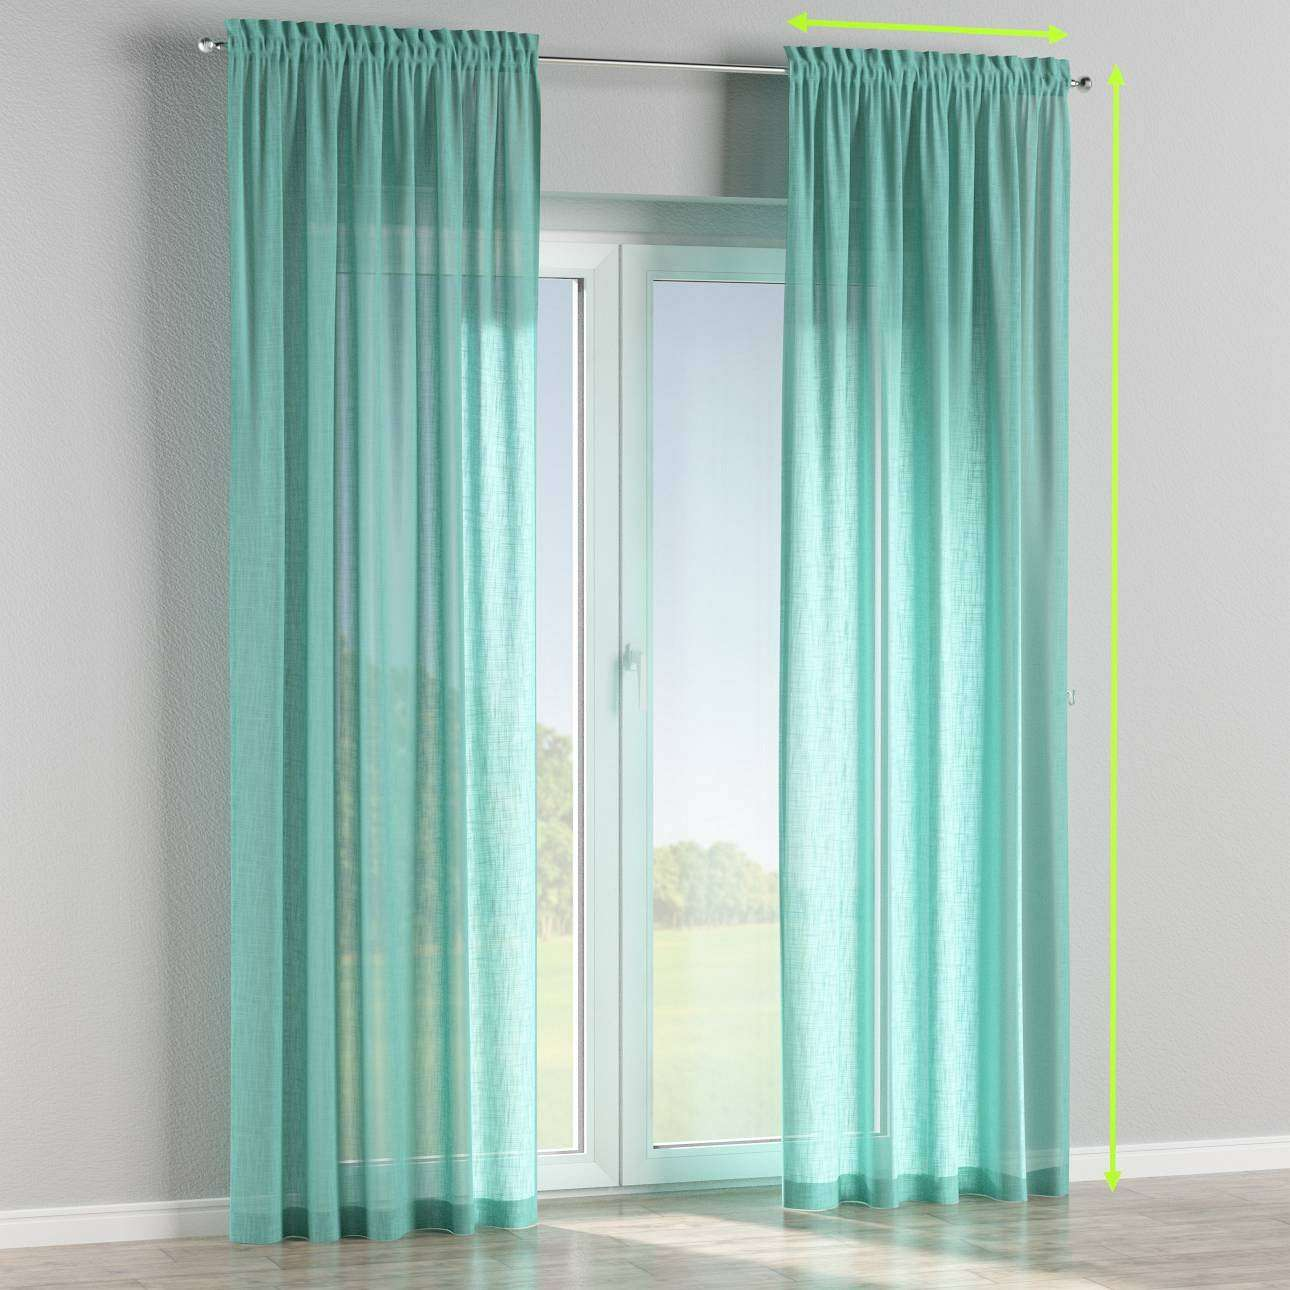 Slot and frill curtains in collection Romantica, fabric: 128-05